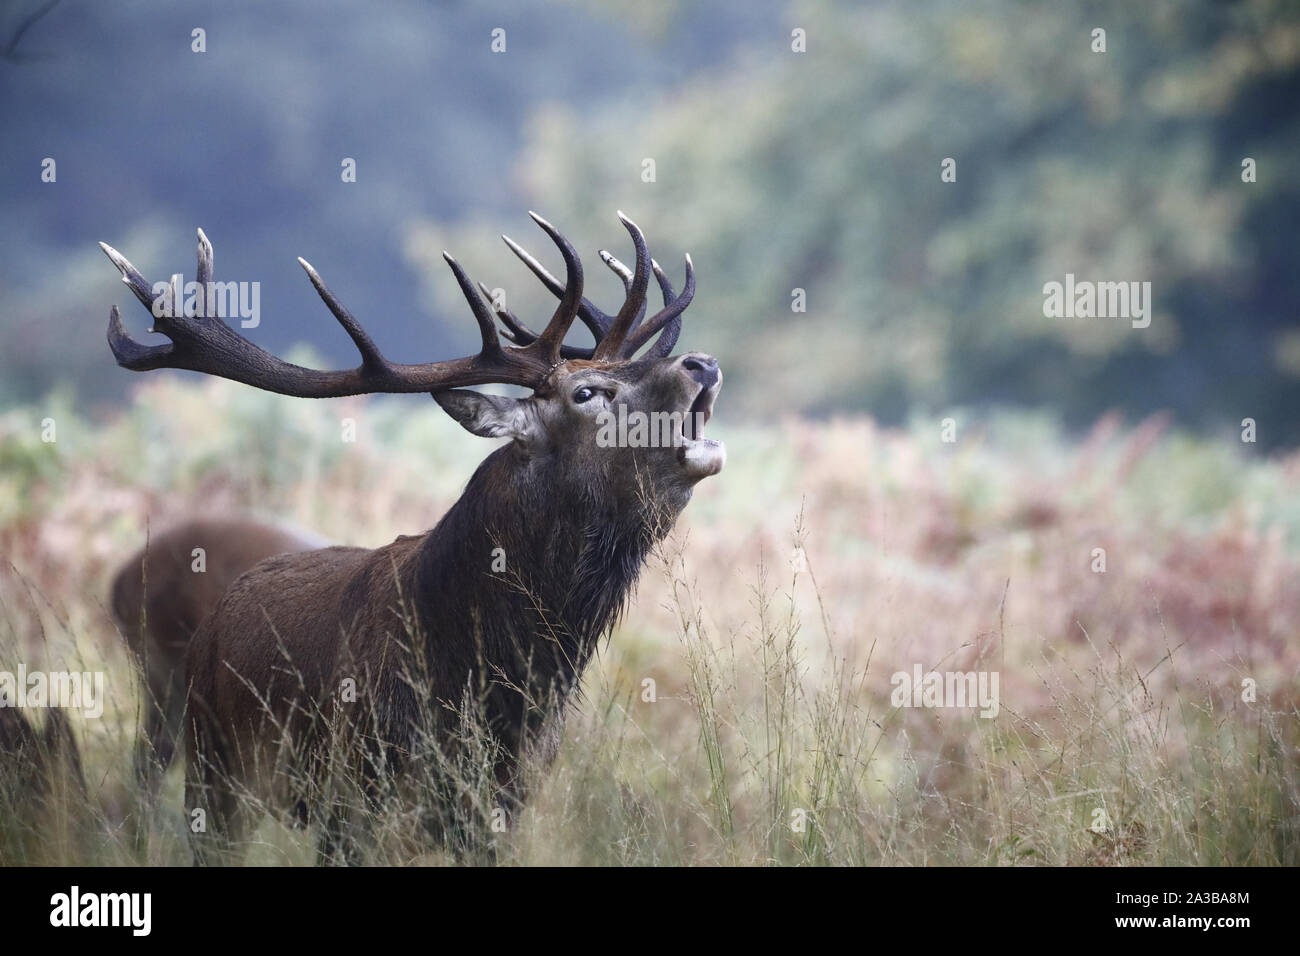 Richmond Park, Londres, UK. 7 Oct 2019.A Red Deer (Cervus elaphus) bolving à l'assemblée annuelle de l'ornière aujourd'hui à Richmond Park, Royaume-Uni. Credit:Ed Brown/Alamy Live News Banque D'Images